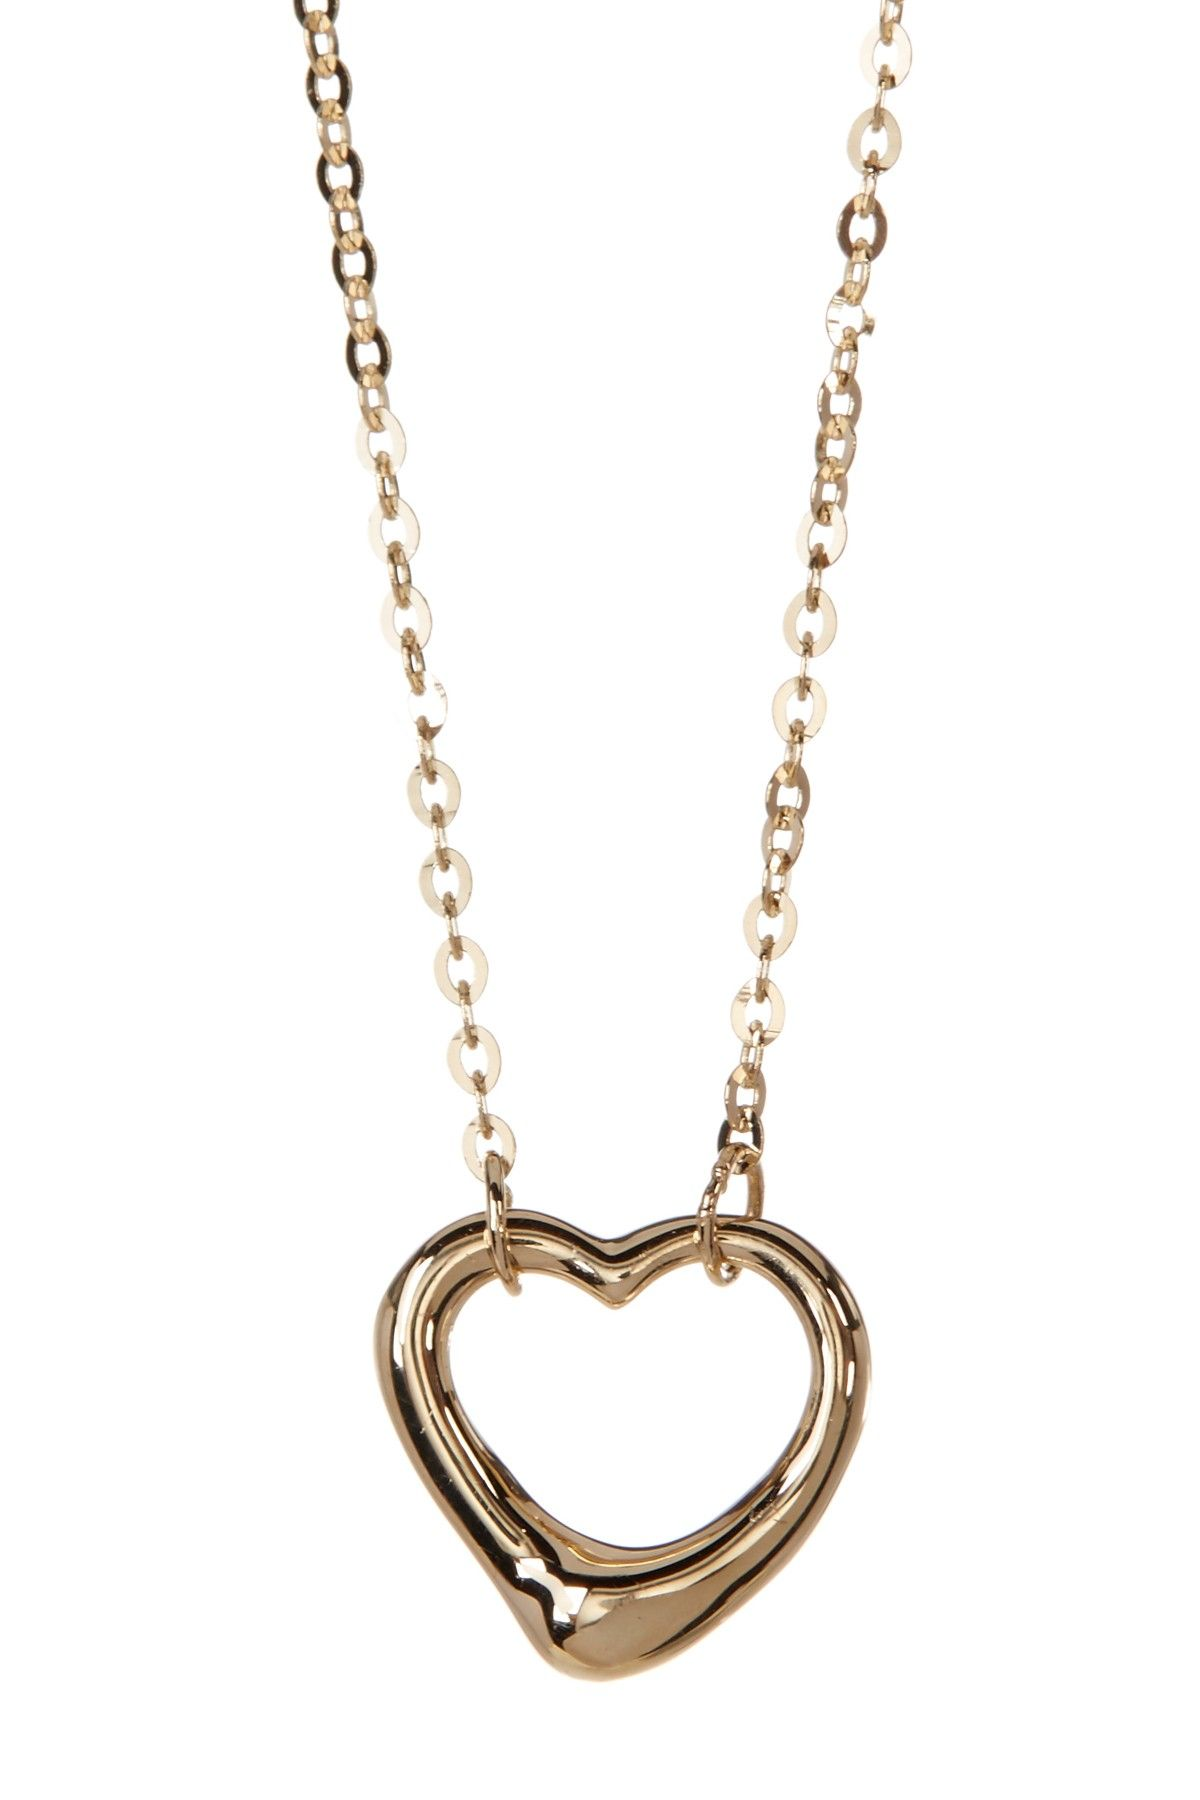 K Yellow Gold Open Heart Pendant Necklace Free shipping and Products